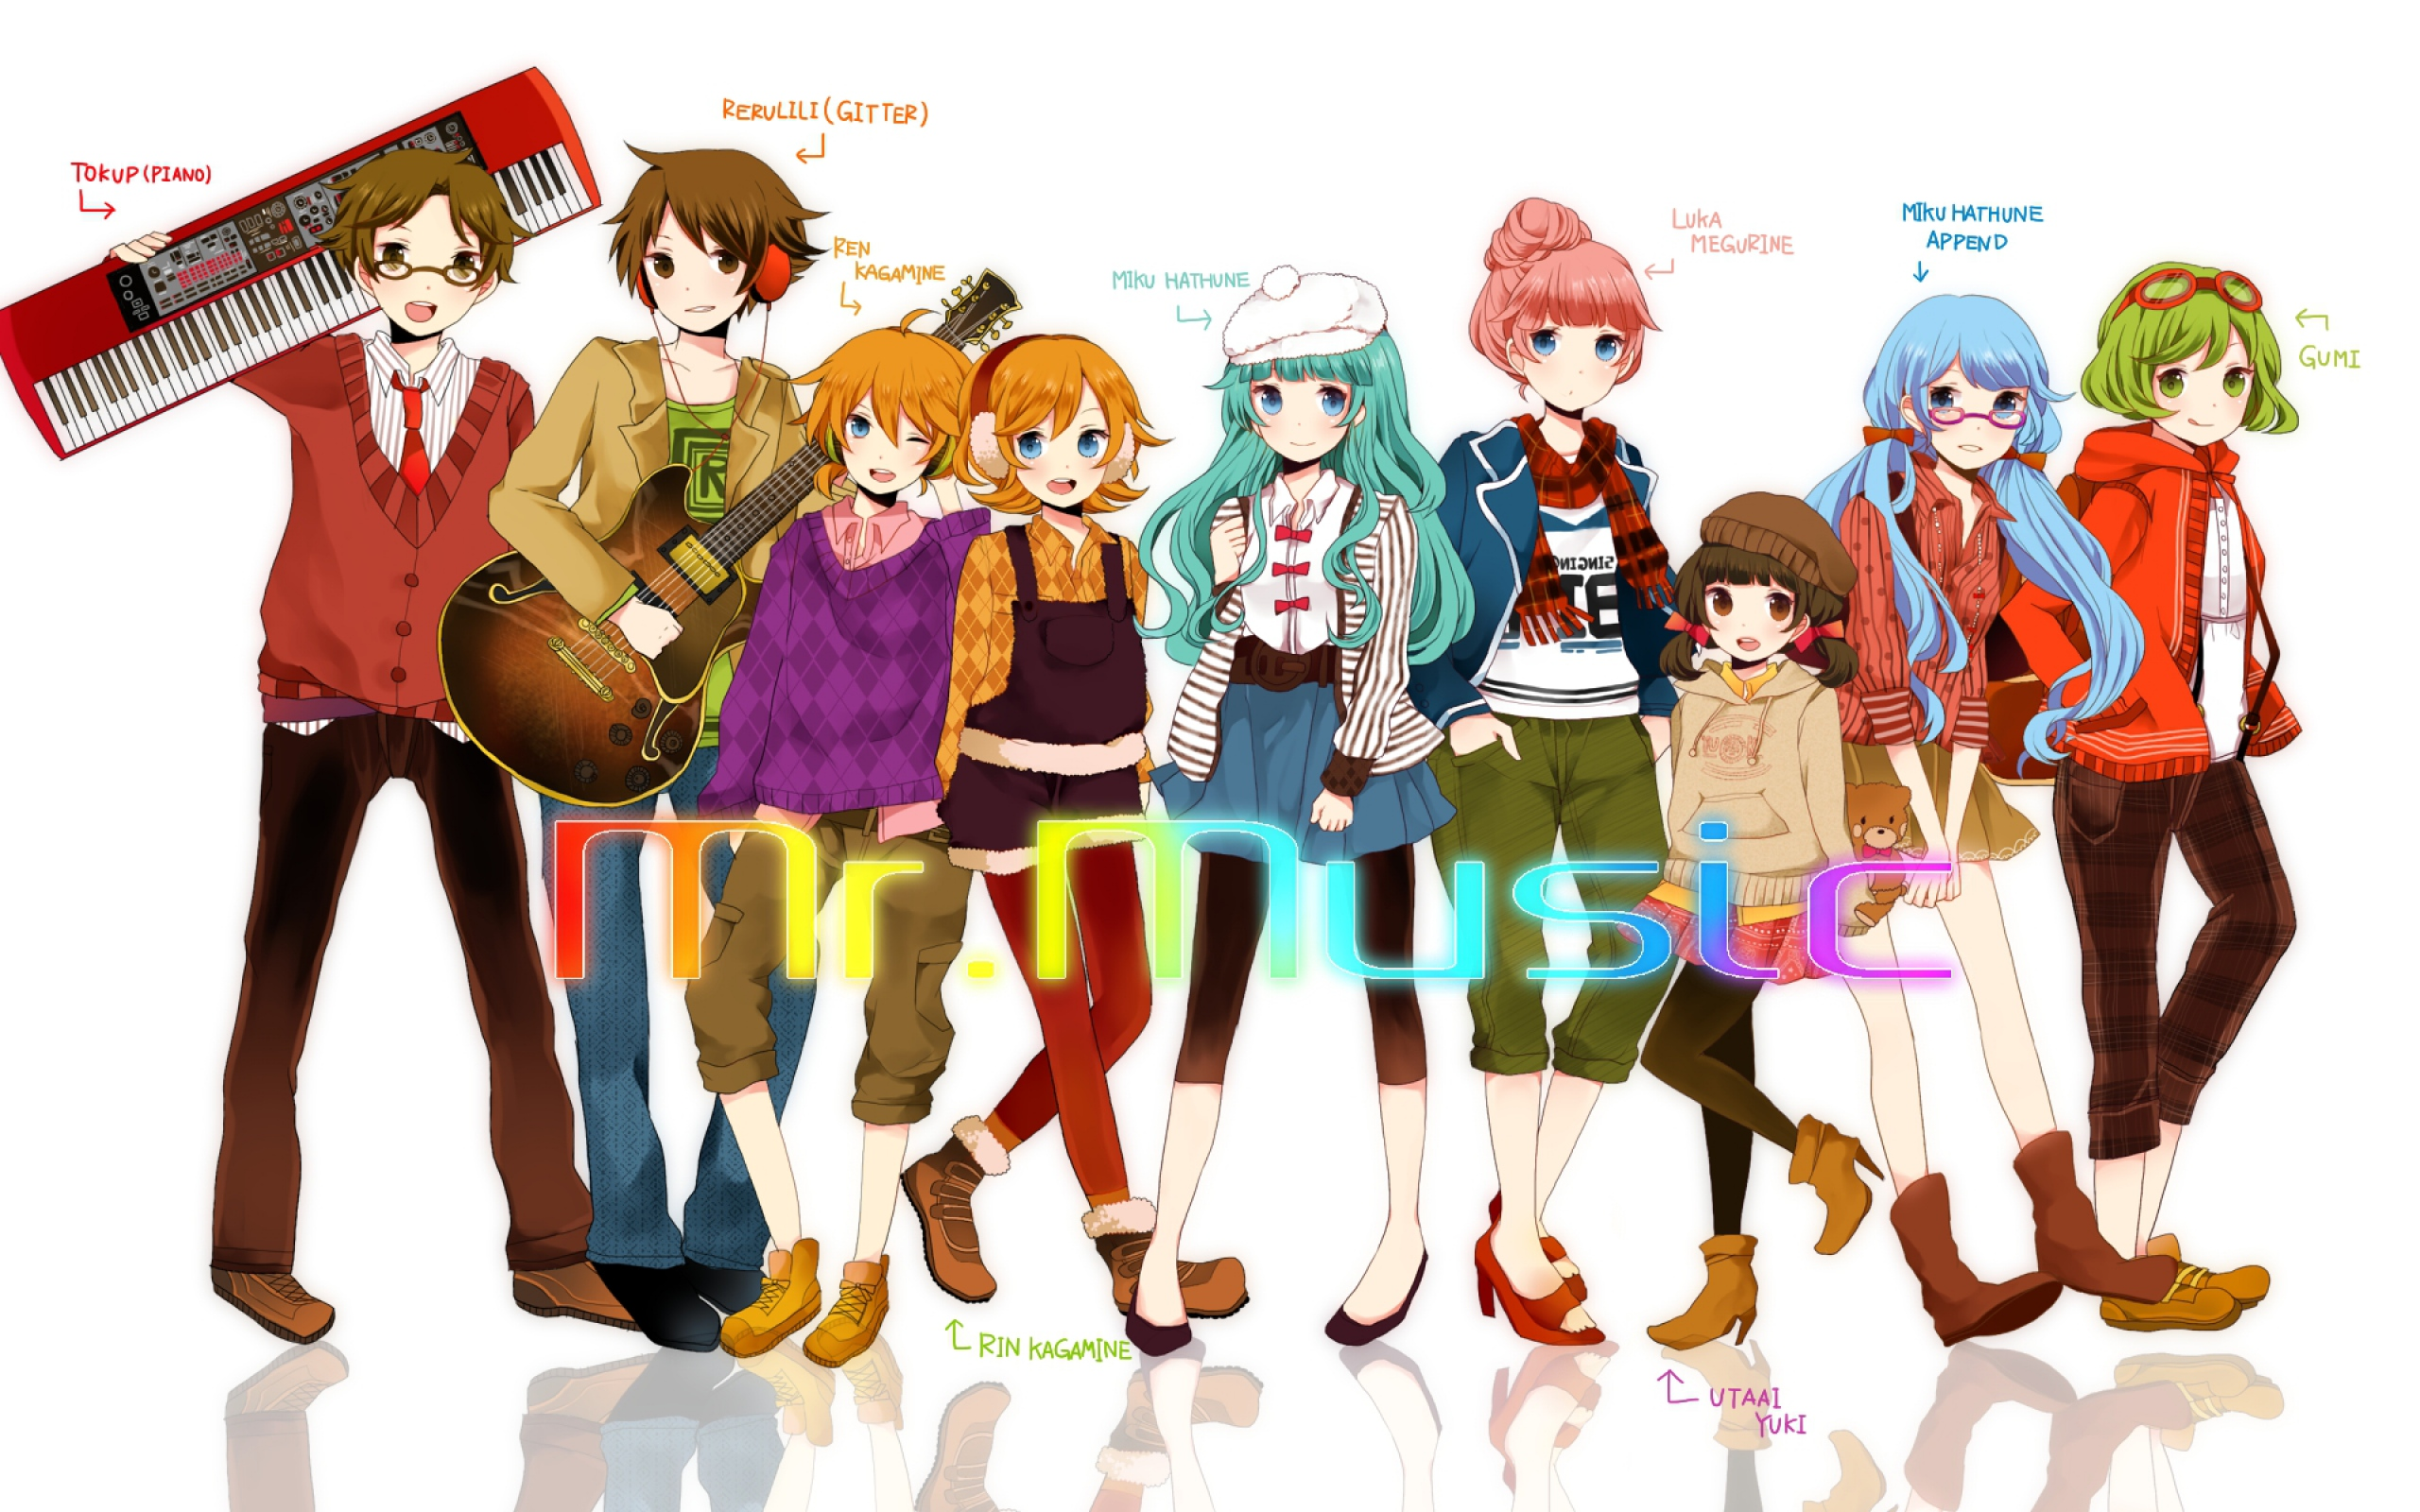 vocaloid characters wallpapers - photo #34